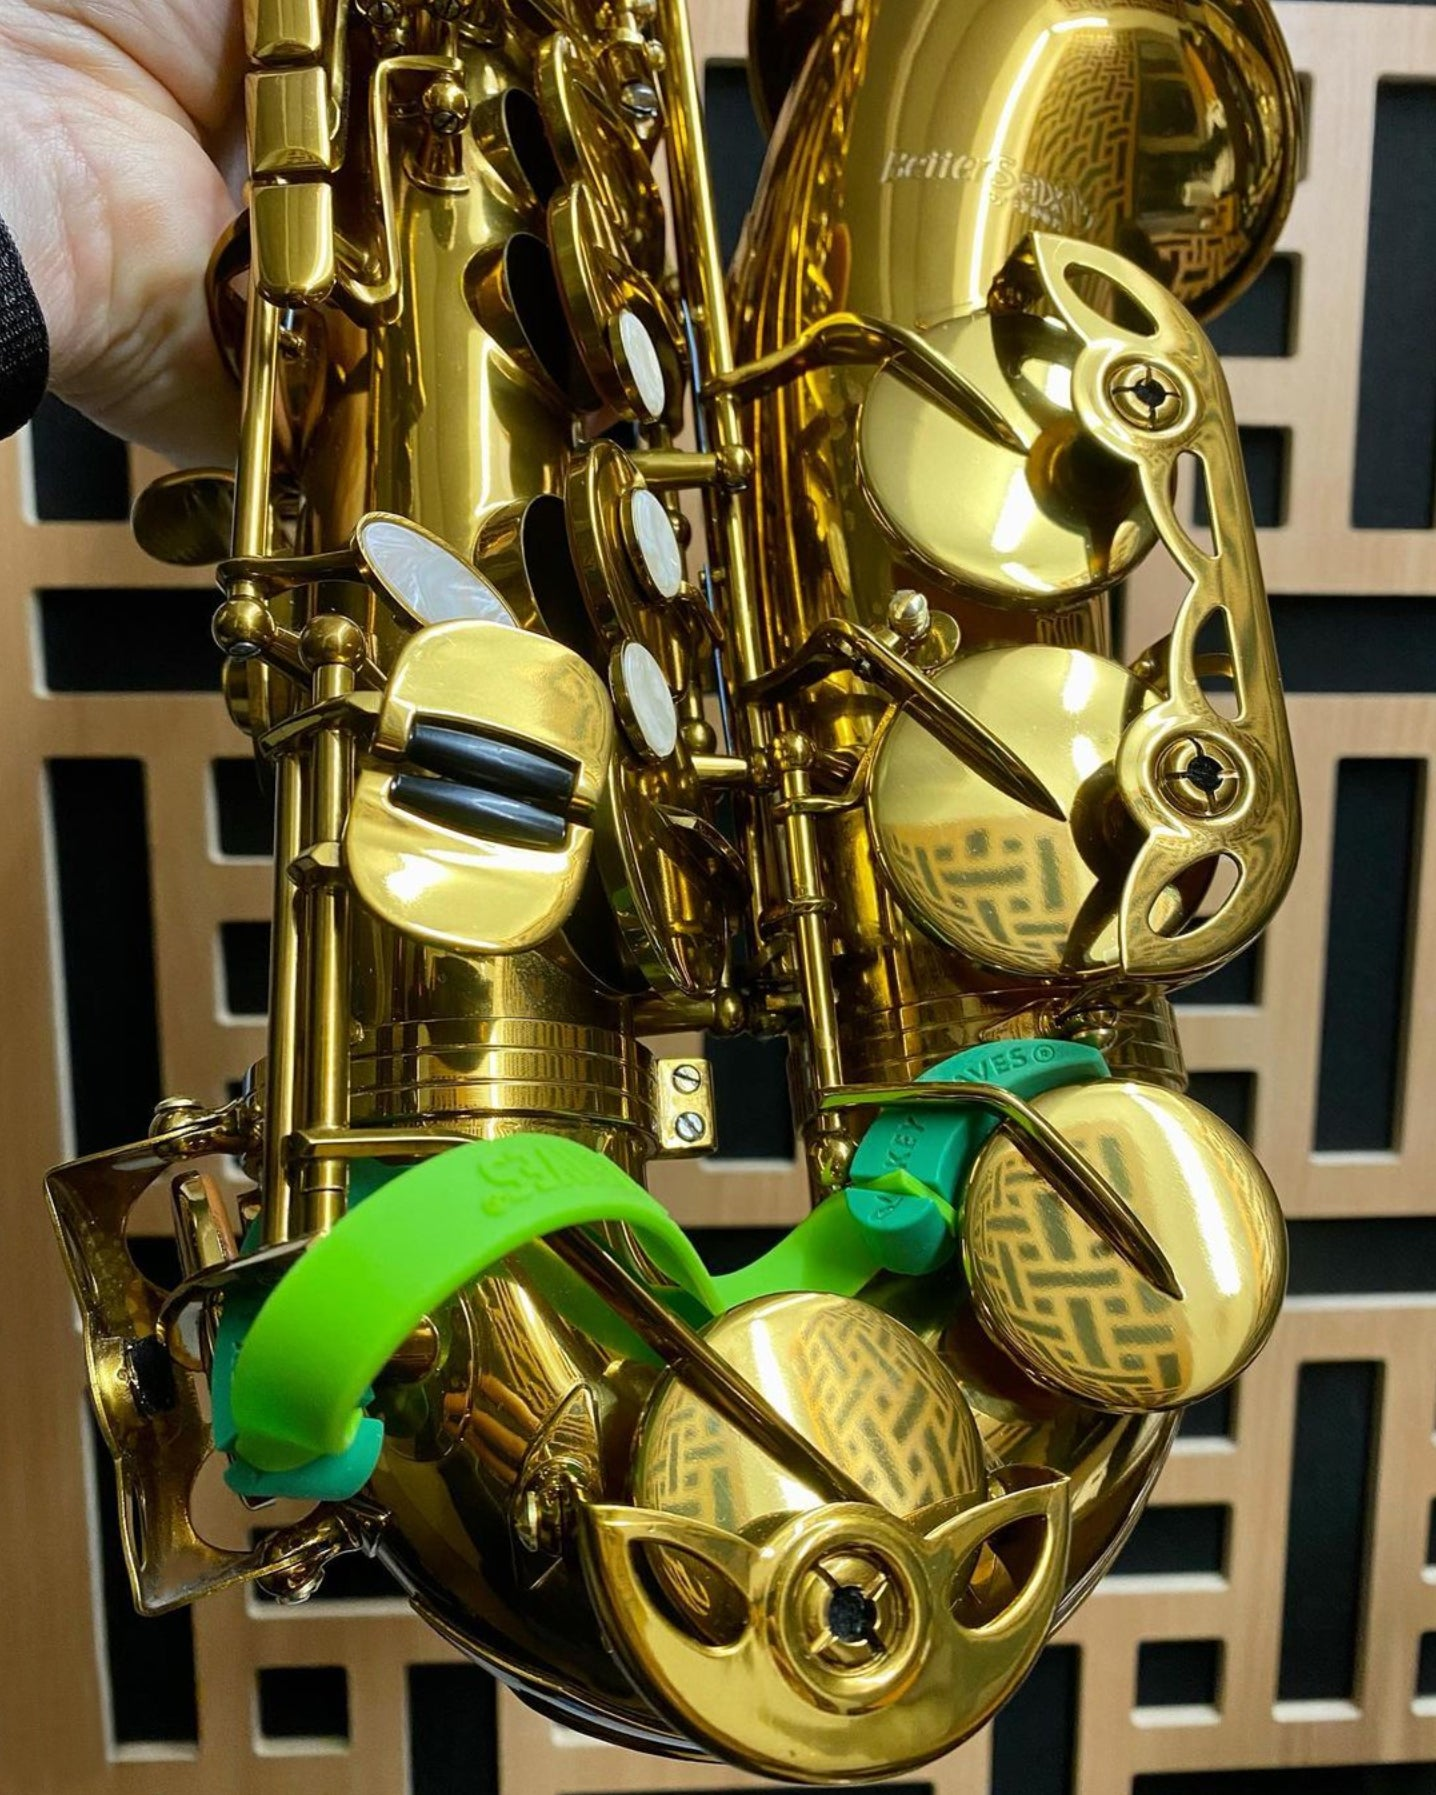 Green Key Leaves saxophone key props used on a gold Better Sax alto saxophone from Conn-Selmer